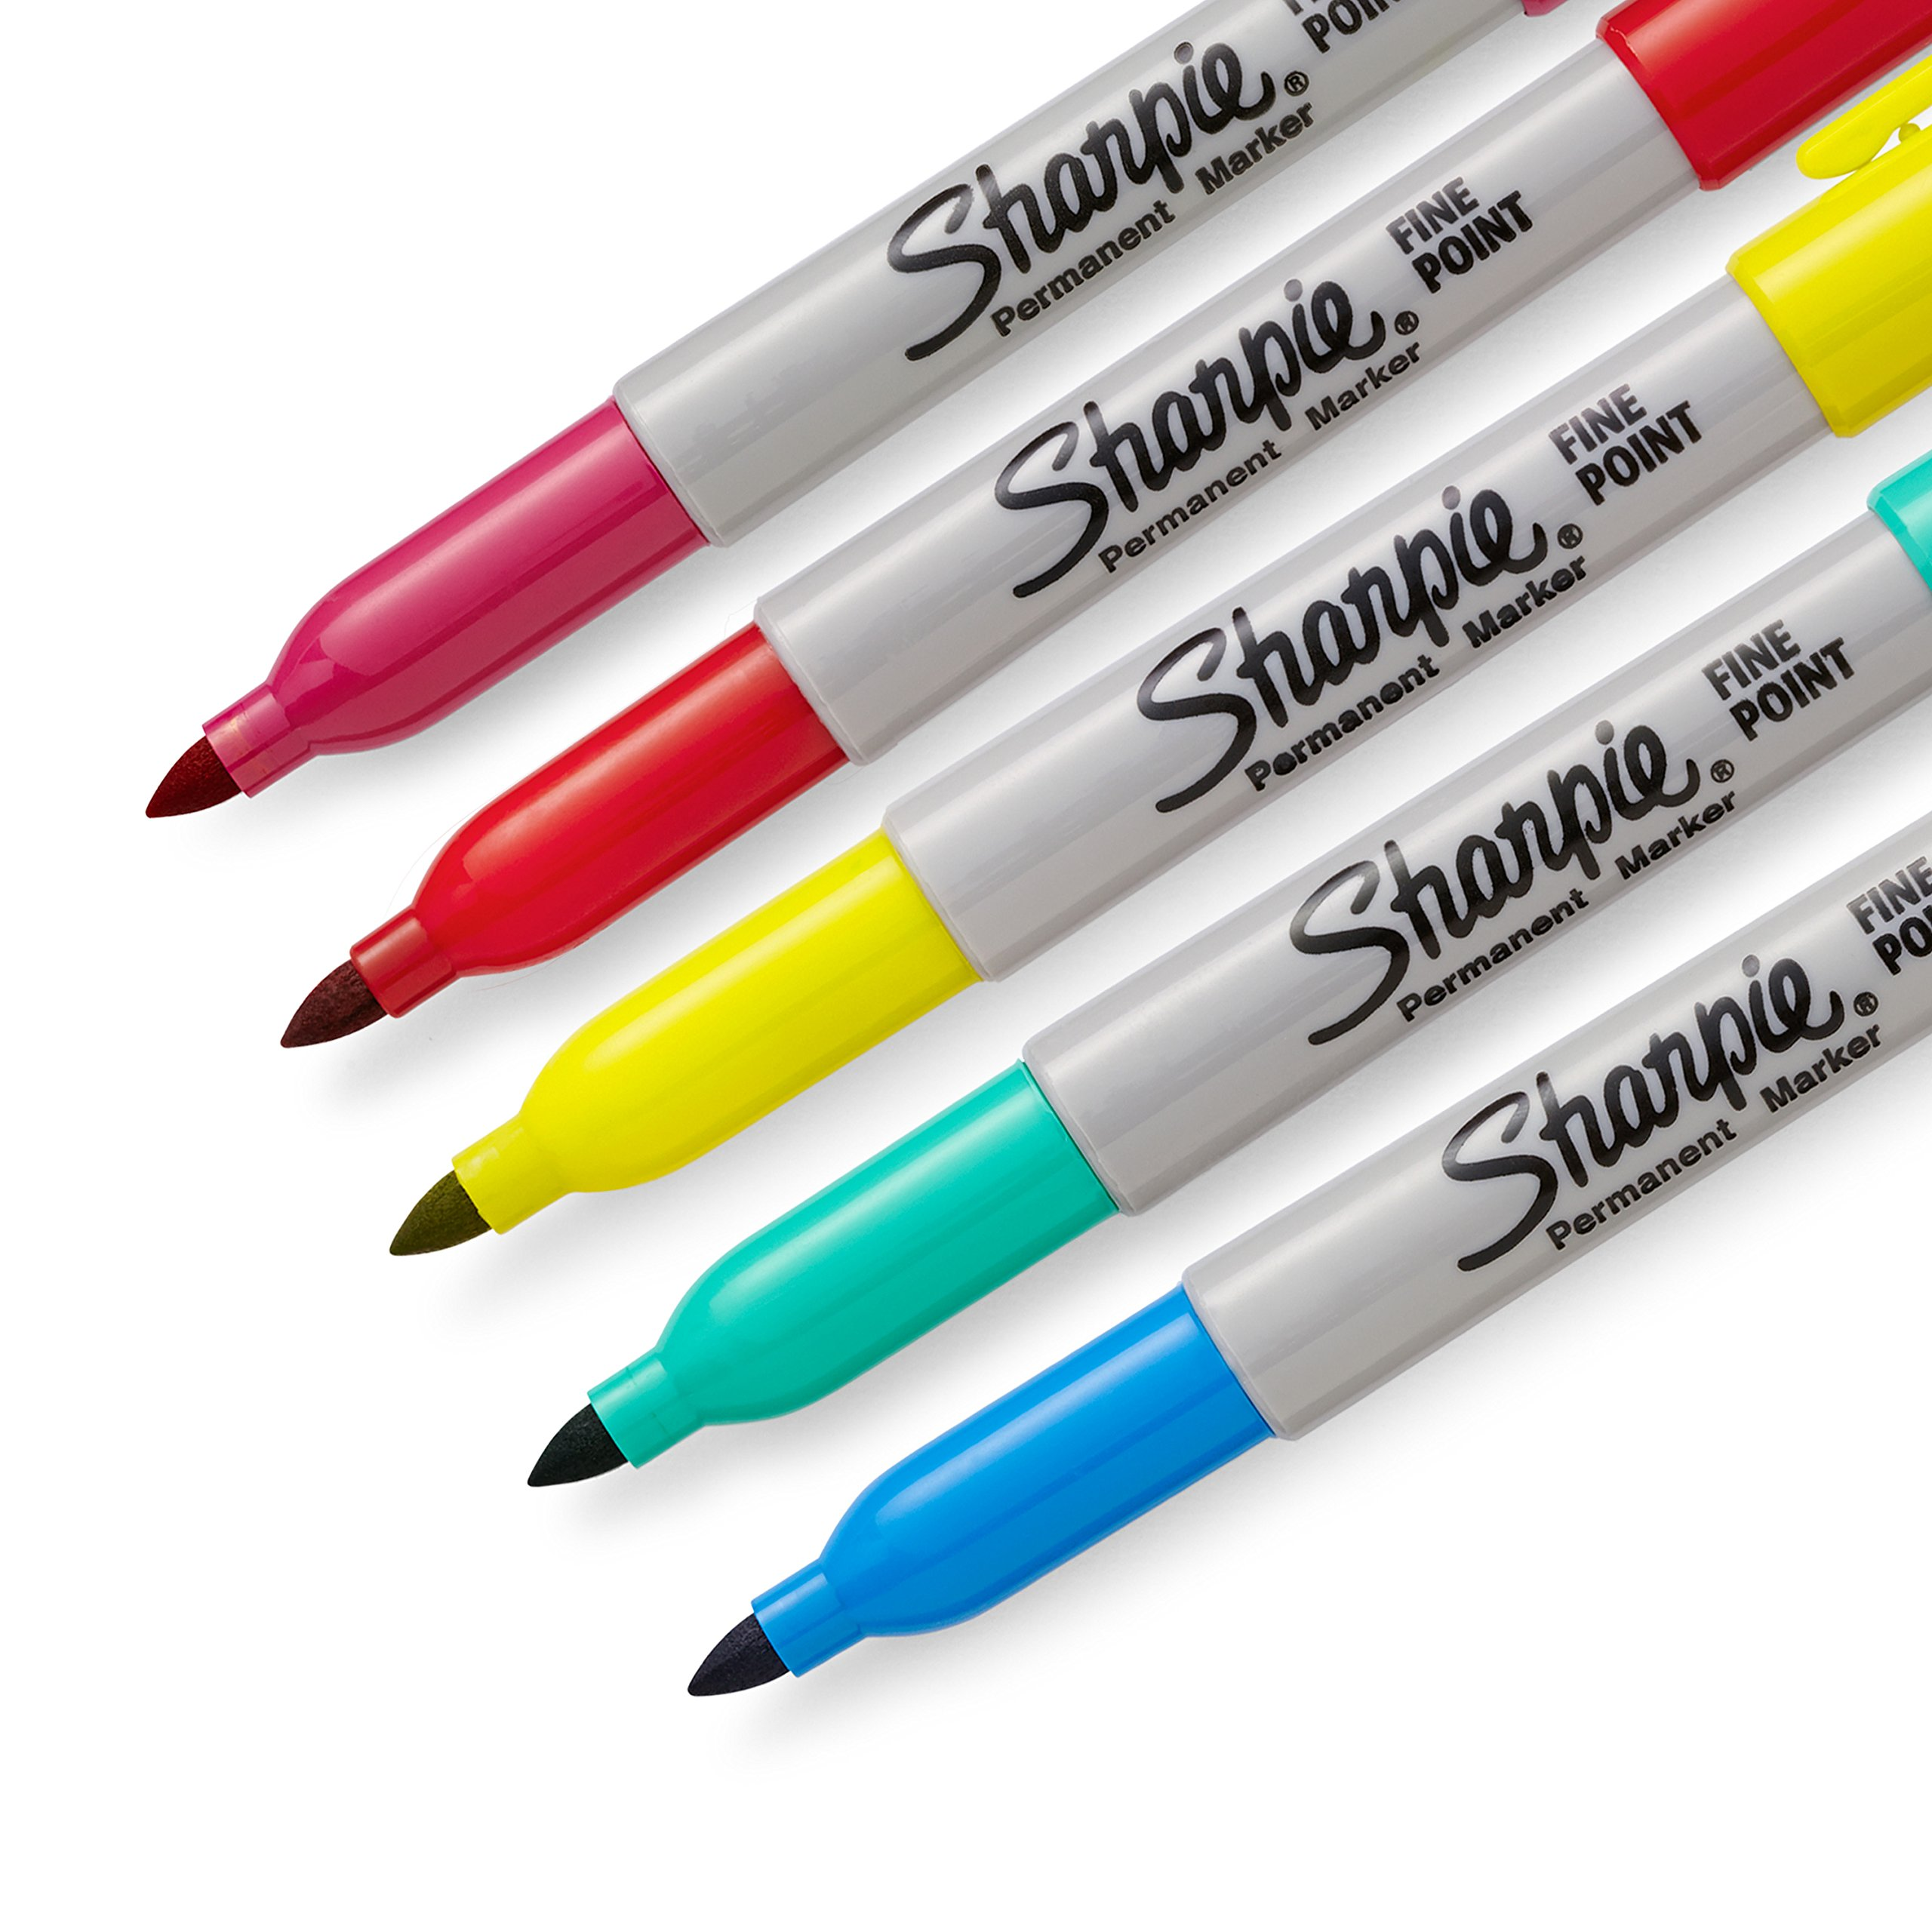 Sharpie Color Burst Permanent Markers, Fine Point, Assorted Colors, 24 Count by Sharpie (Image #4)